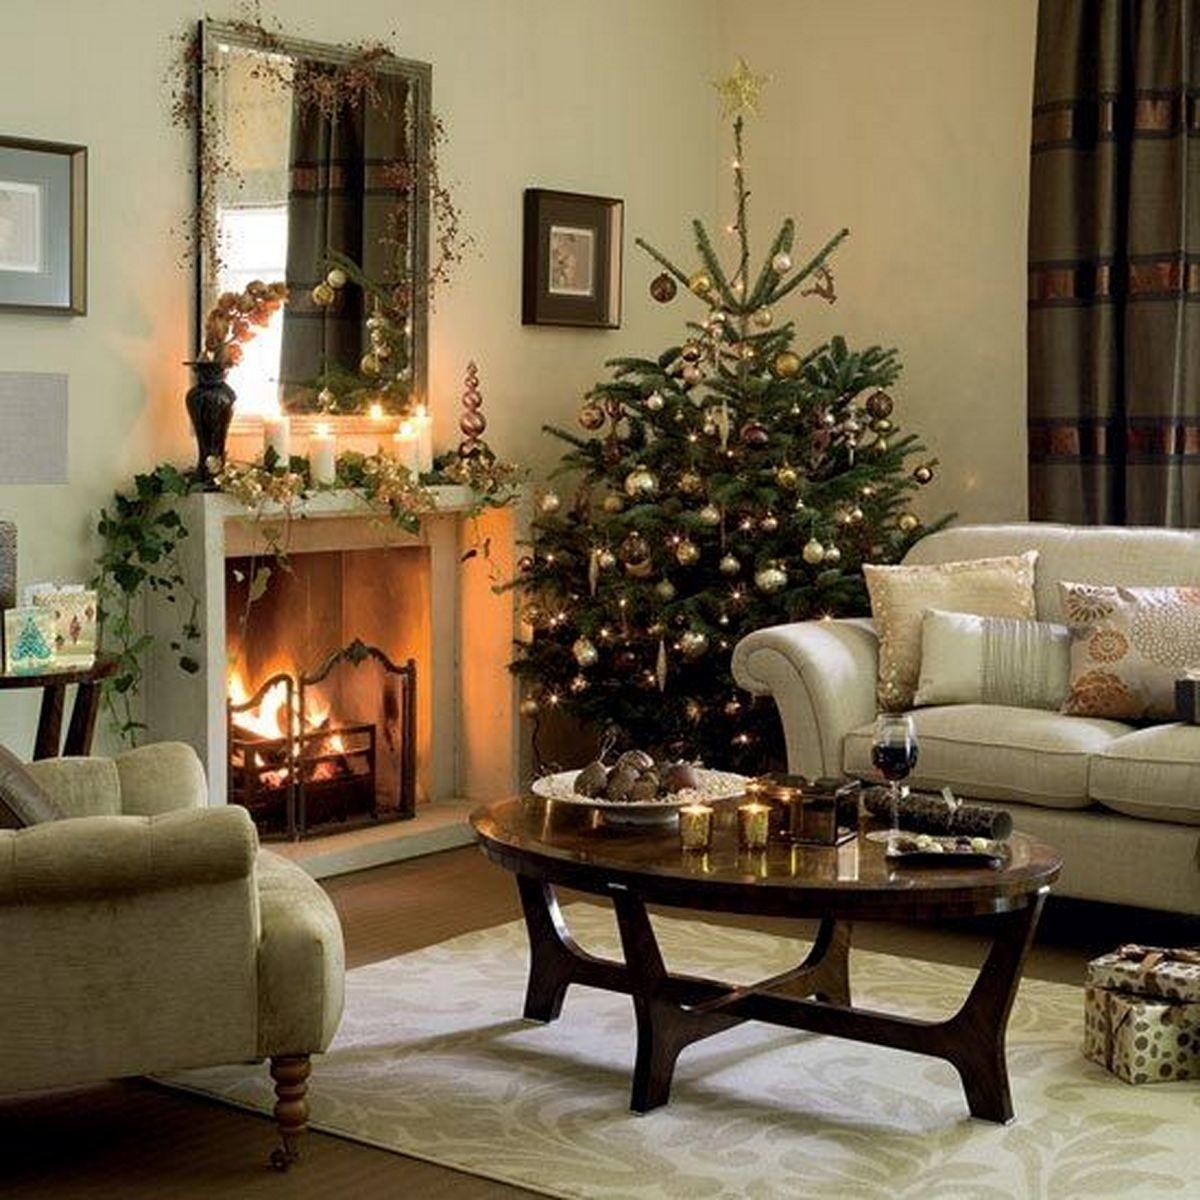 Decorate Small Living Room Christmas